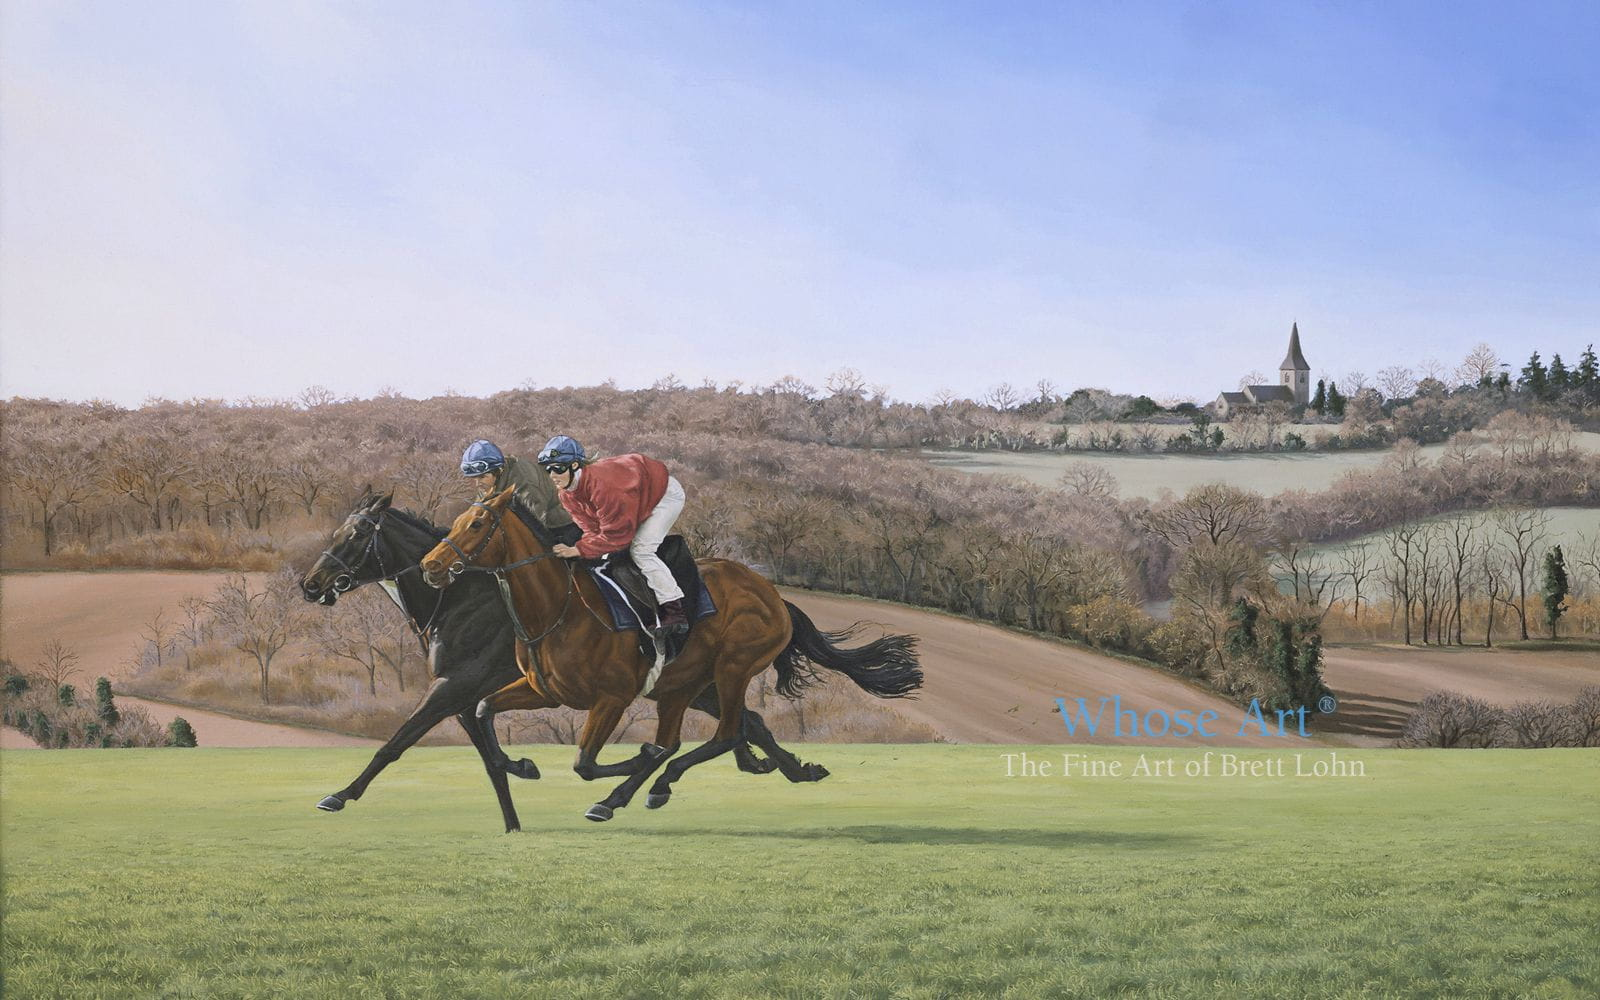 Horses galloping art oil painting of 2 horses in training galloping with jockeys up. Beautiful hills & a church behind